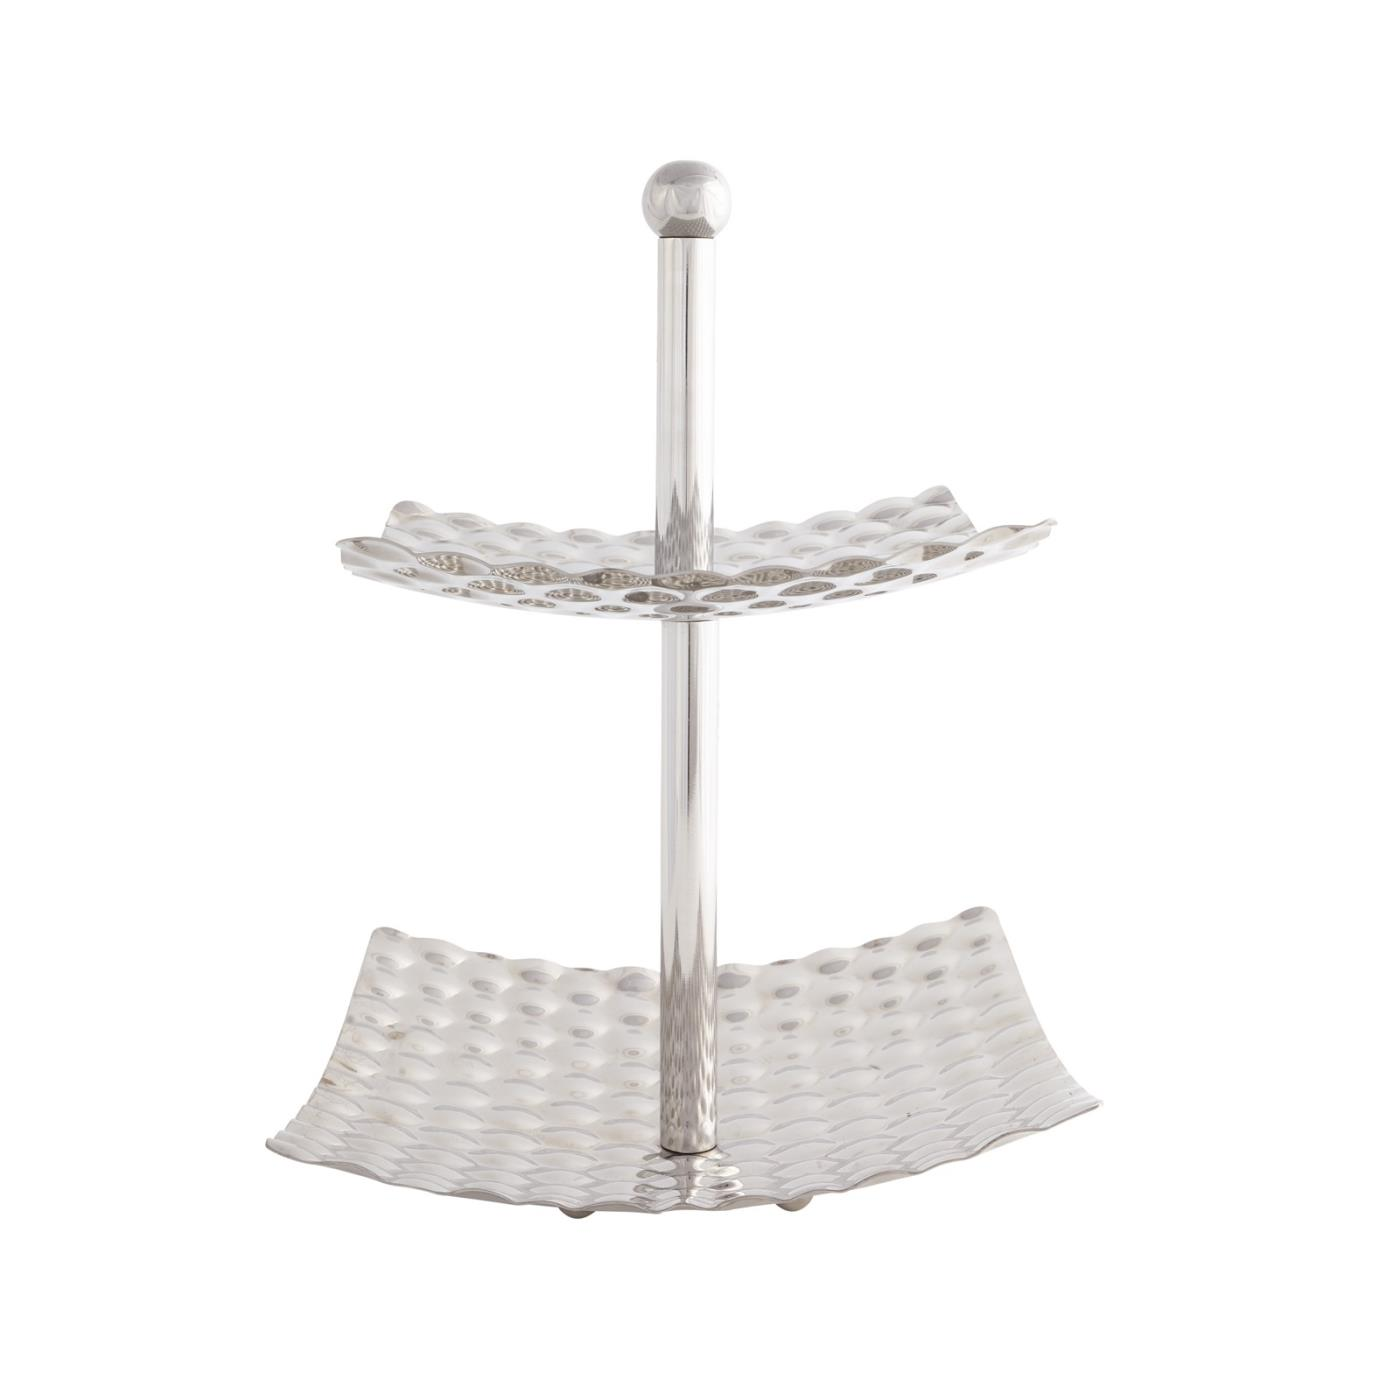 Stainless Steel Simmer Square 2-Tier Stand